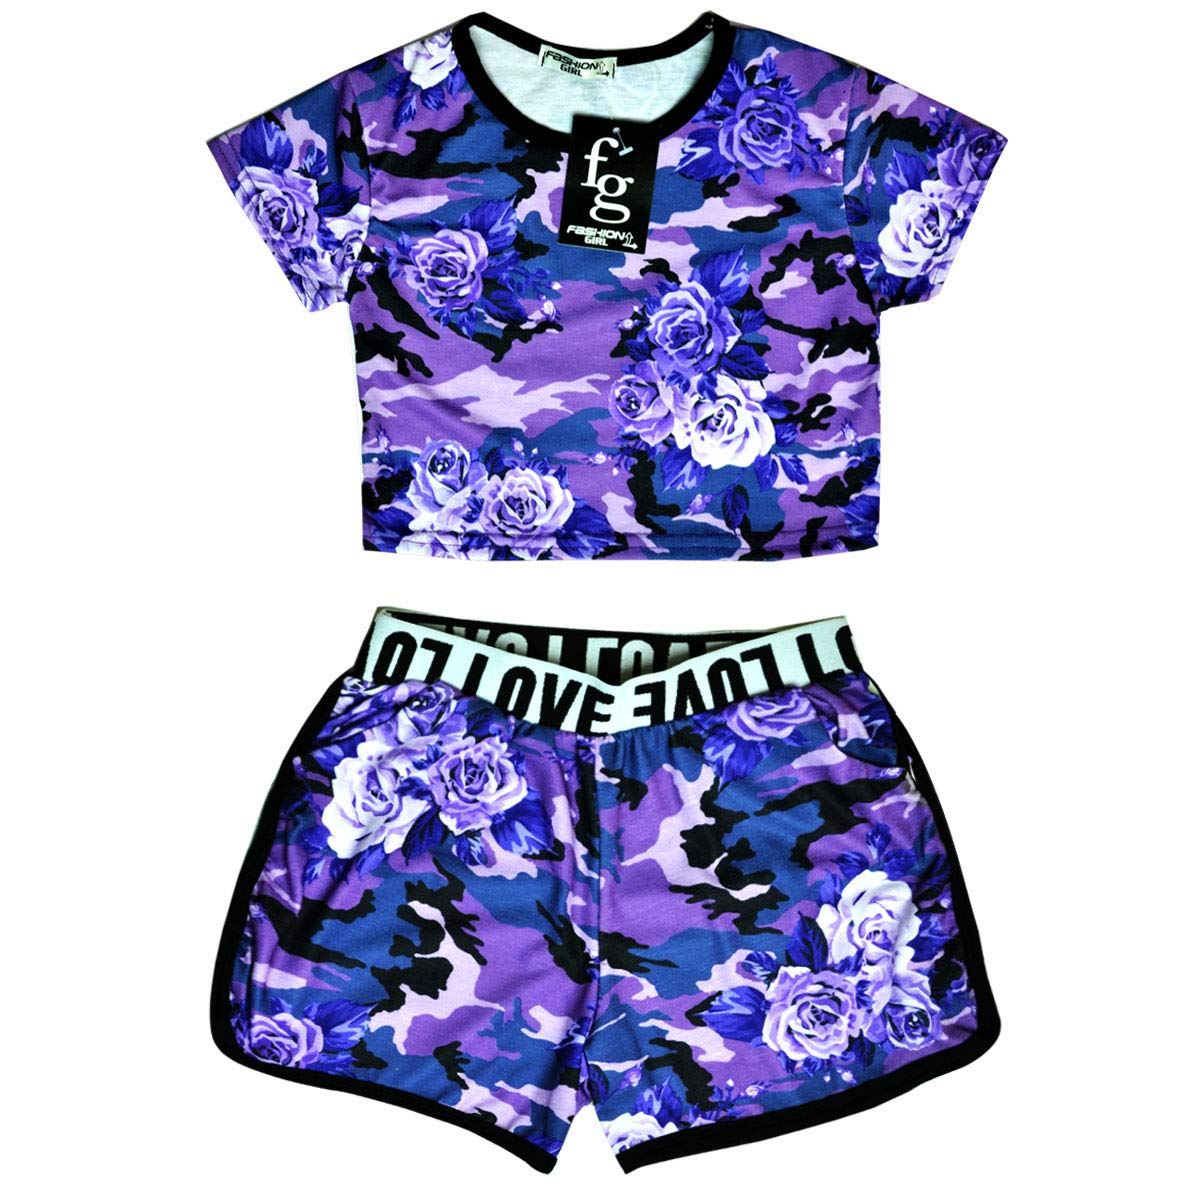 Girls Camo Crop Top And Shorts Outfit New Kids Summer Set Blue Pink Age 5-13 Yrs